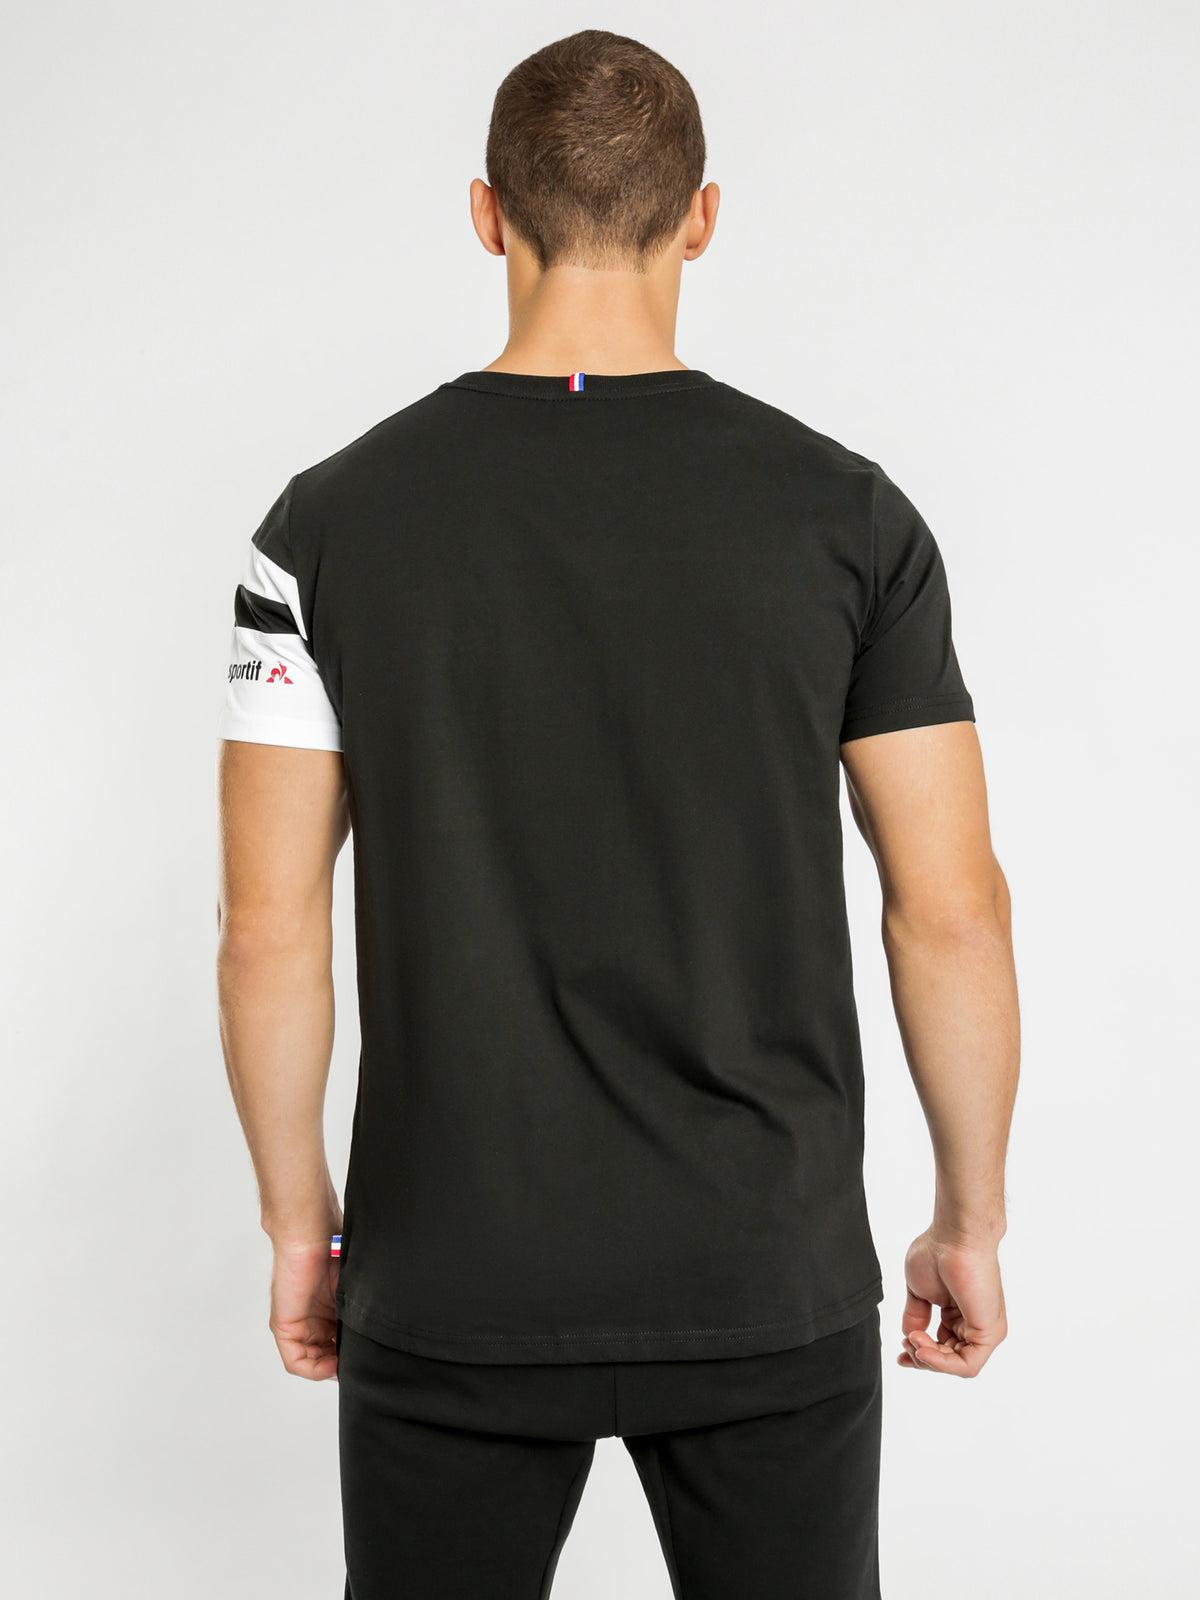 Verrill T-Shirt in Black